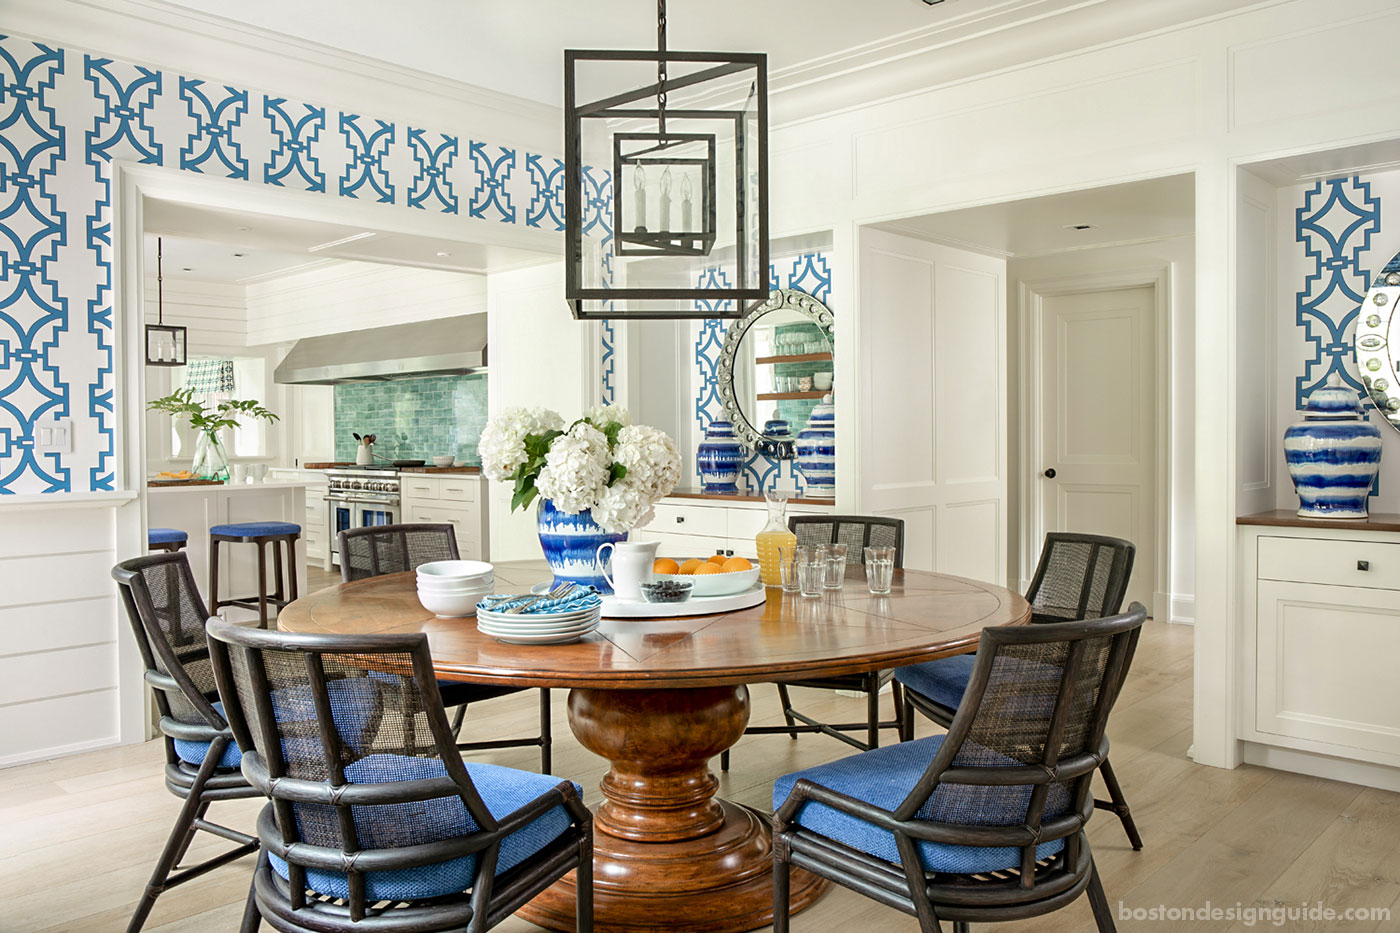 Casual Cape Cod blue and white dining room with bold patterns